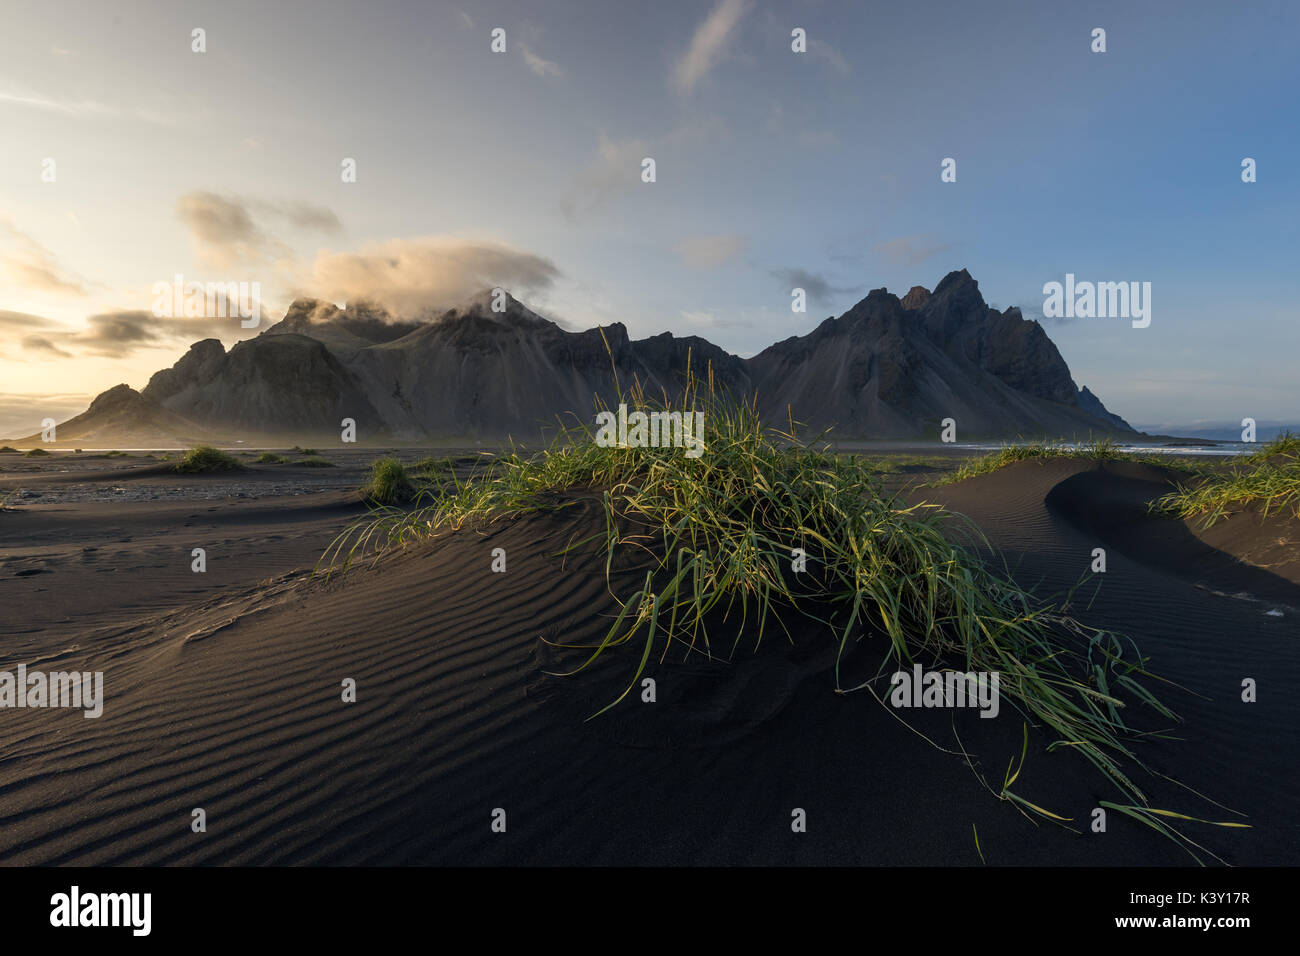 Dunes on Stokksnes beach in front of Vestrahorn mountain, Iceland. - Stock Image